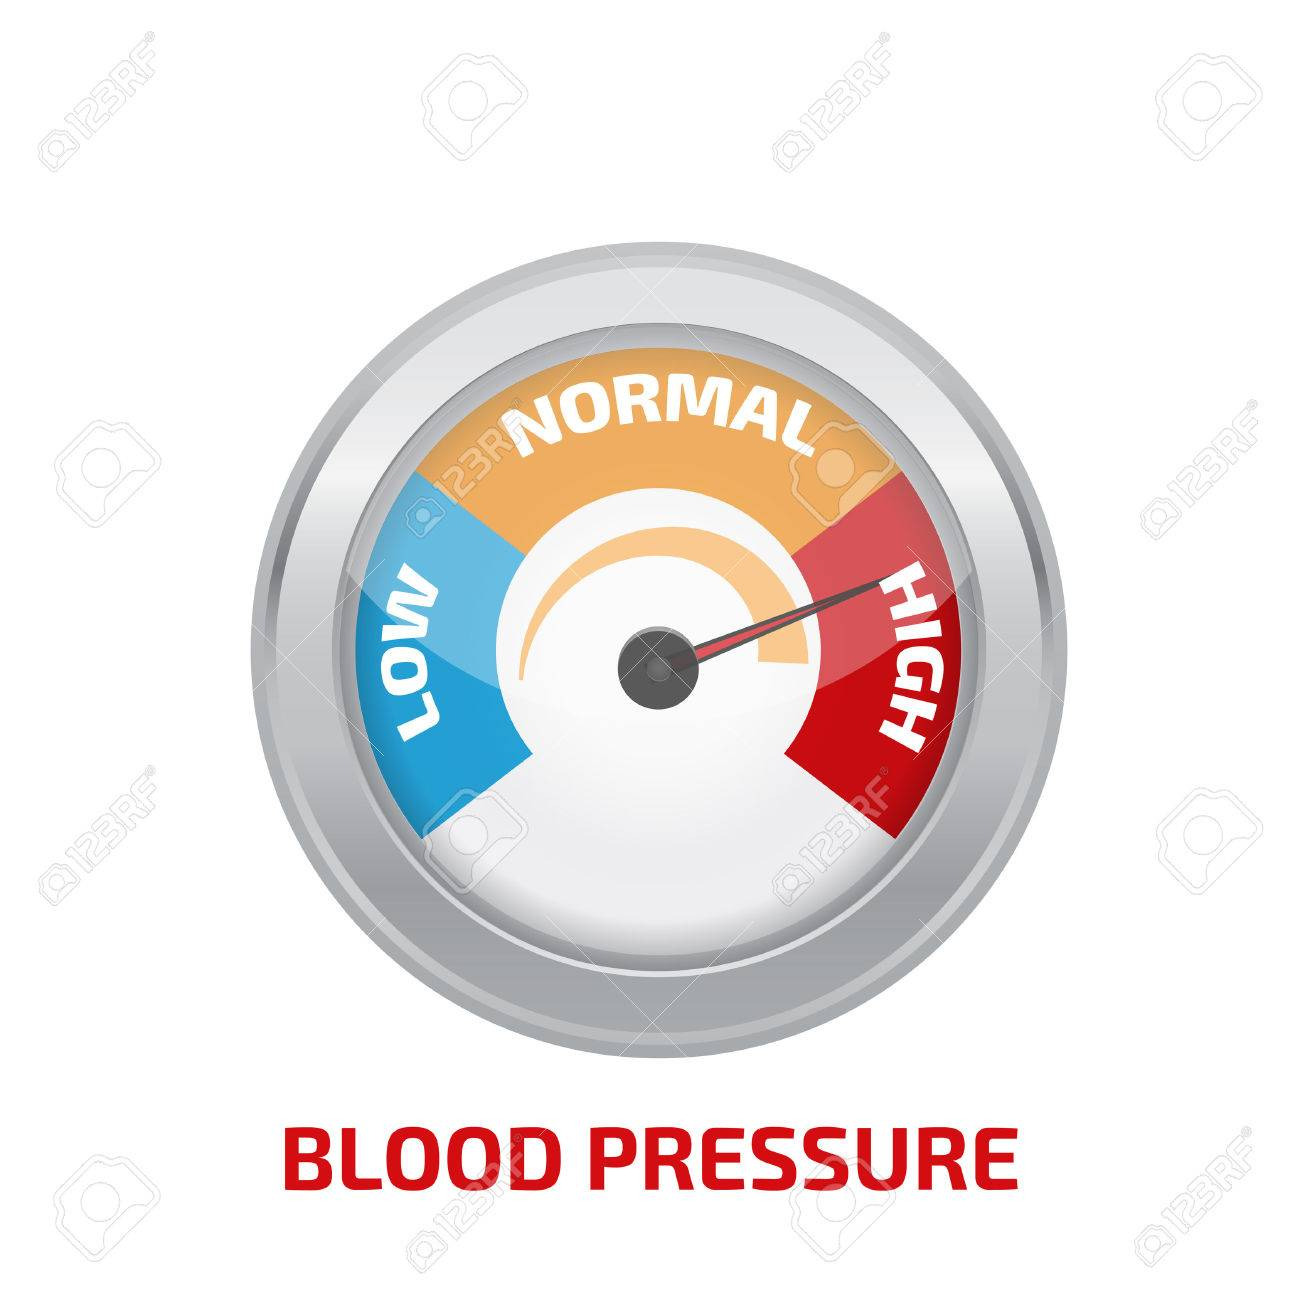 High blood pressure concept vector - 52476626